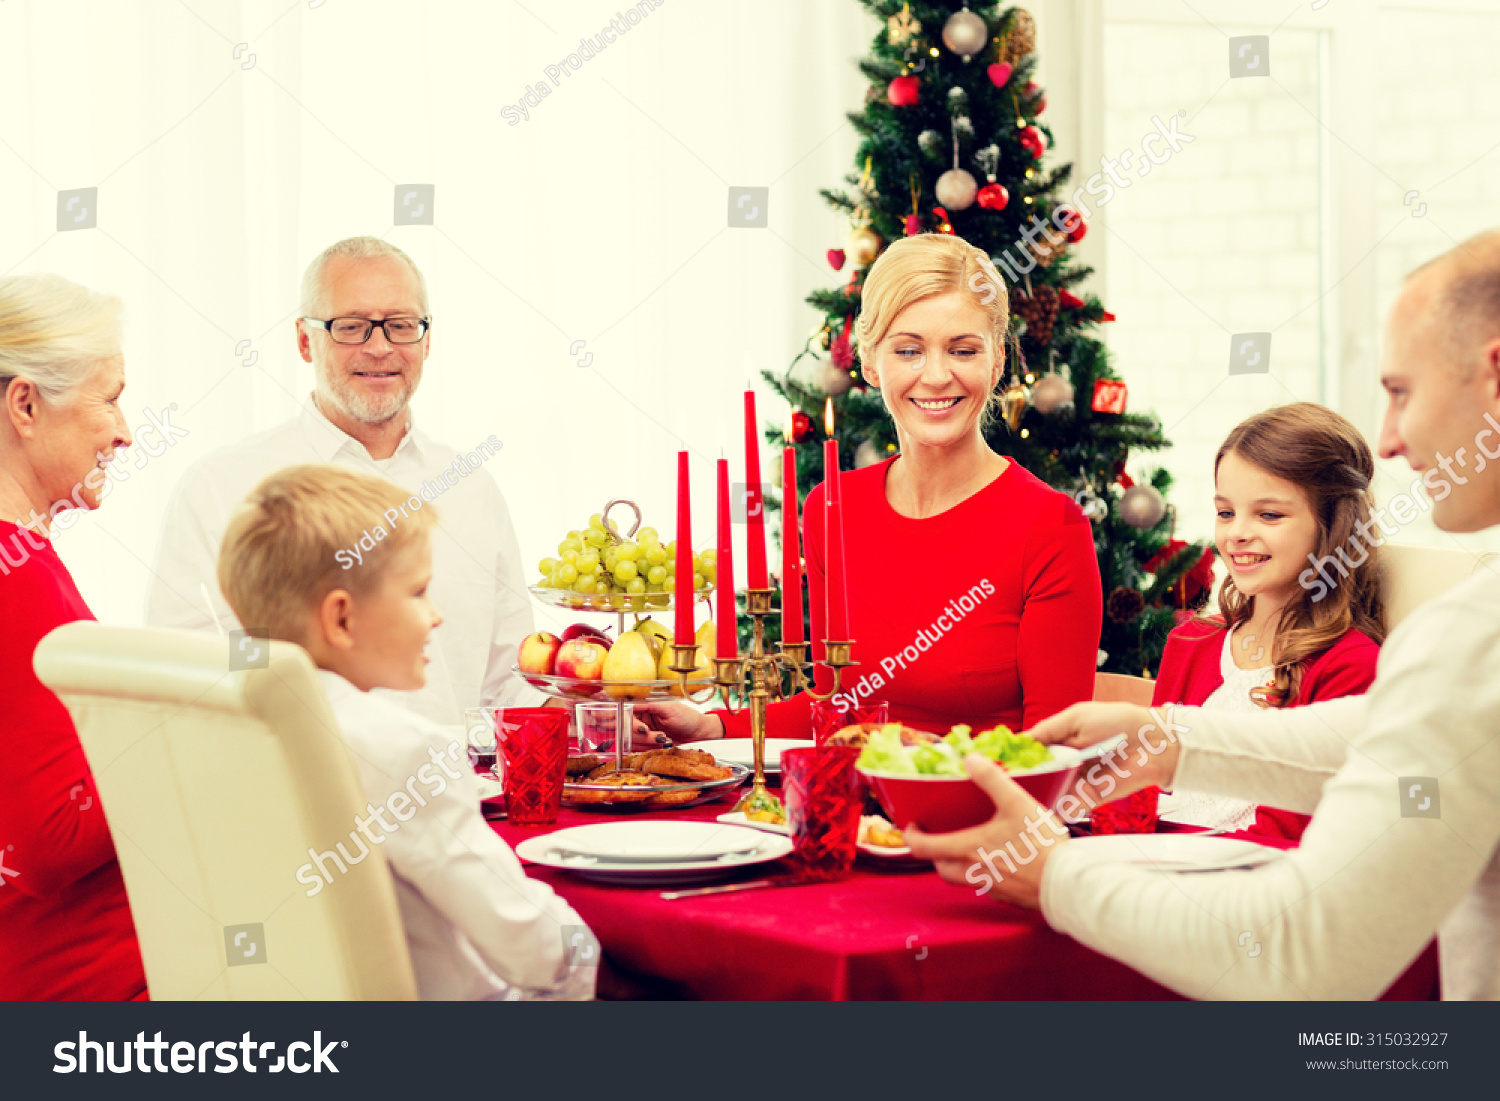 family holidays generation christmas and people concept smiling family having dinner at home